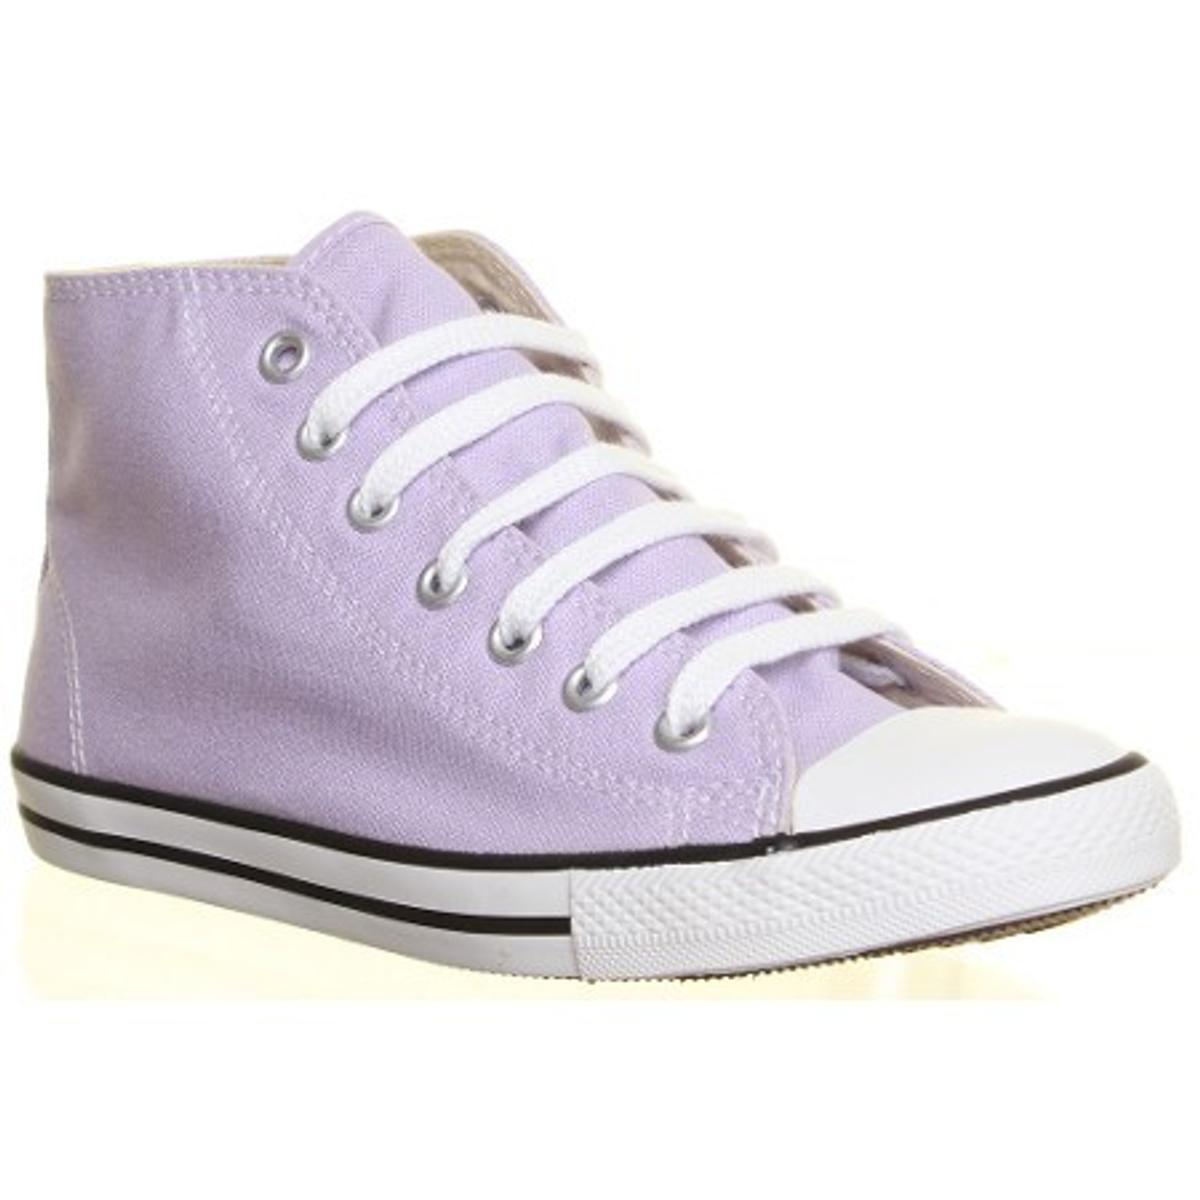 size 40 bfbe0 c3ec9 Converse Chuck Taylor All Star Schuhe Chucks in 71642 ...